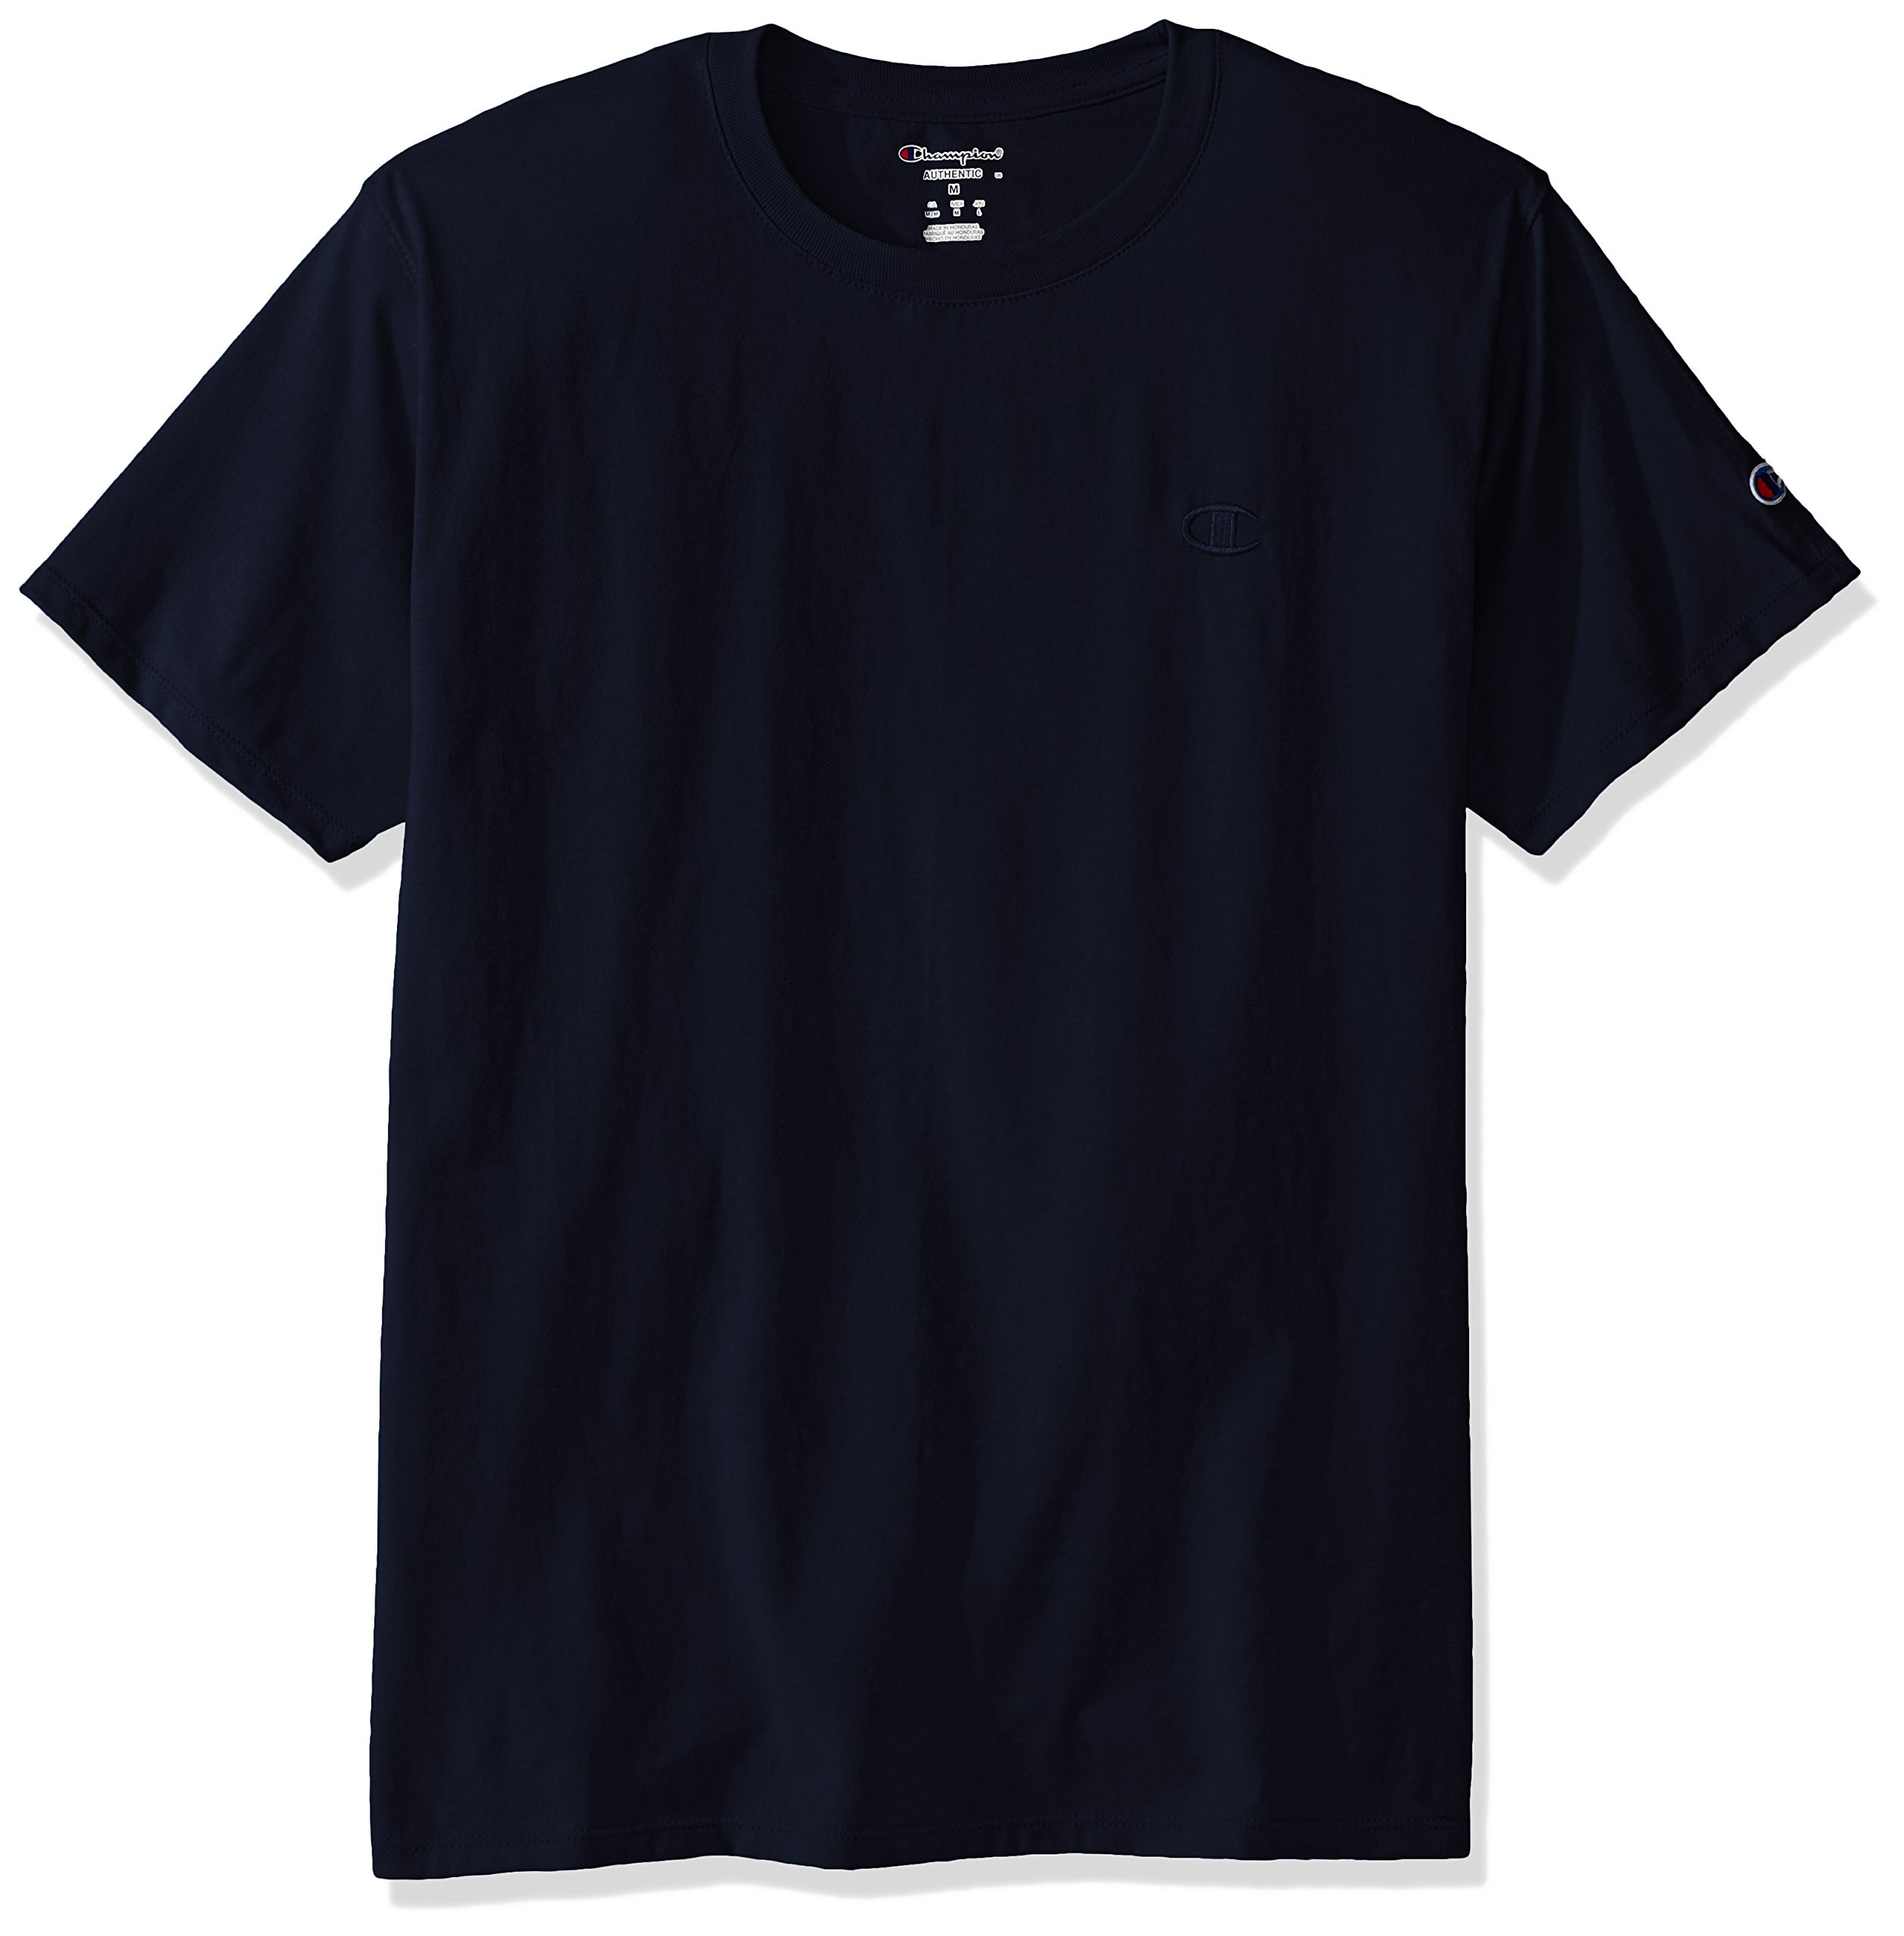 Champion Men's Classic Jersey T-Shirt, Navy, L by Champion